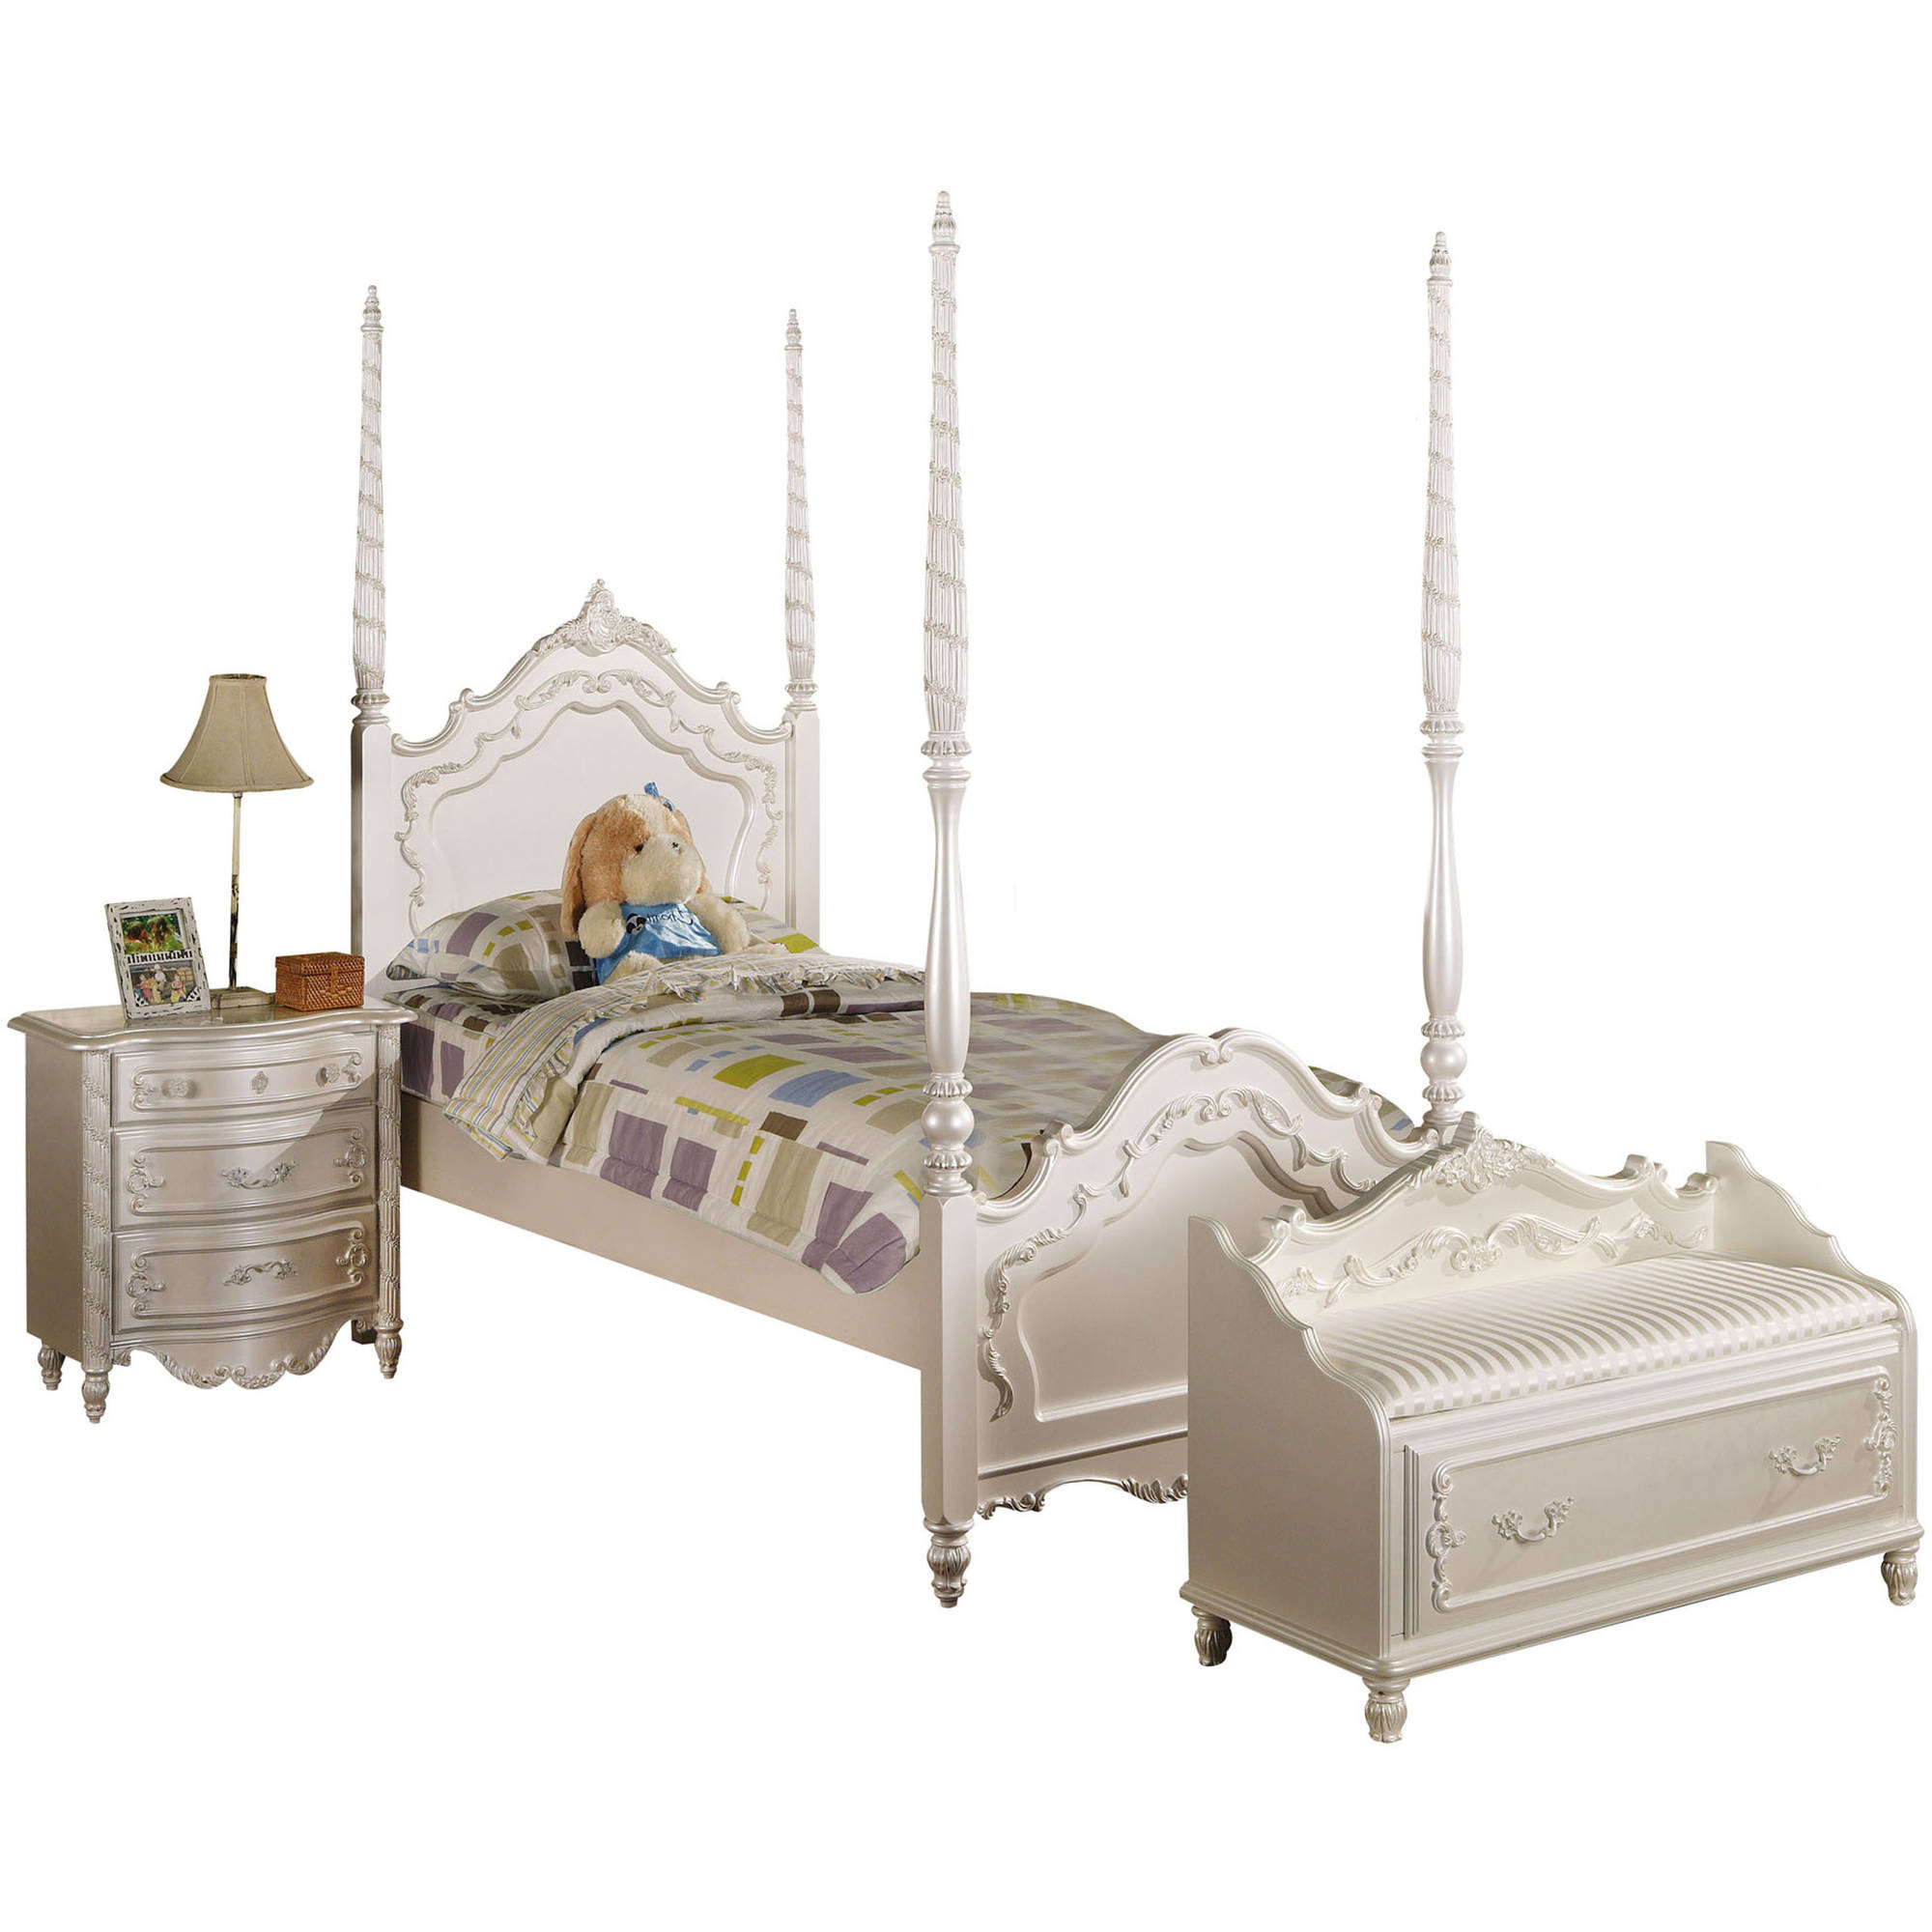 Acme Pearl Twin Poster Bed, Pearl White and Gold Brush Accent, Box 1 of 3 by Acme Furniture